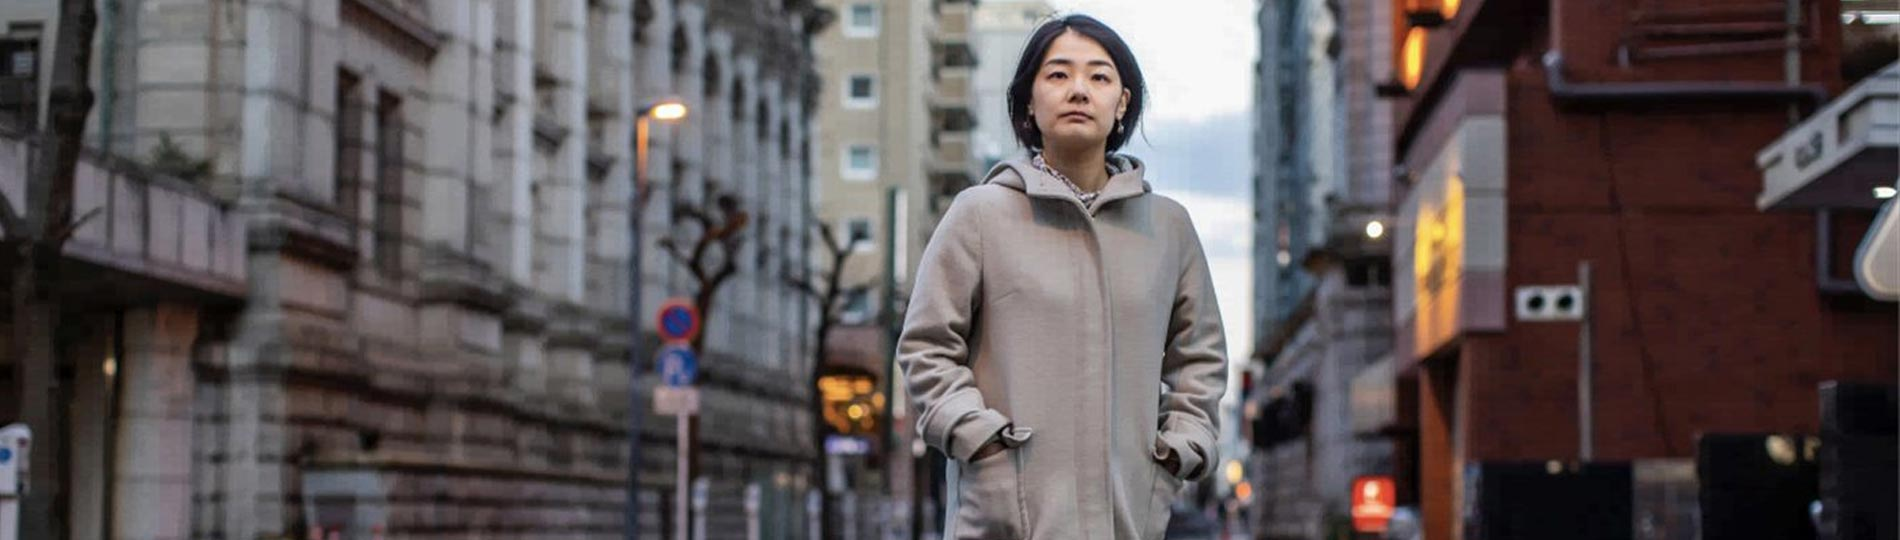 Japan's lost generation is still jobless and living with their parents